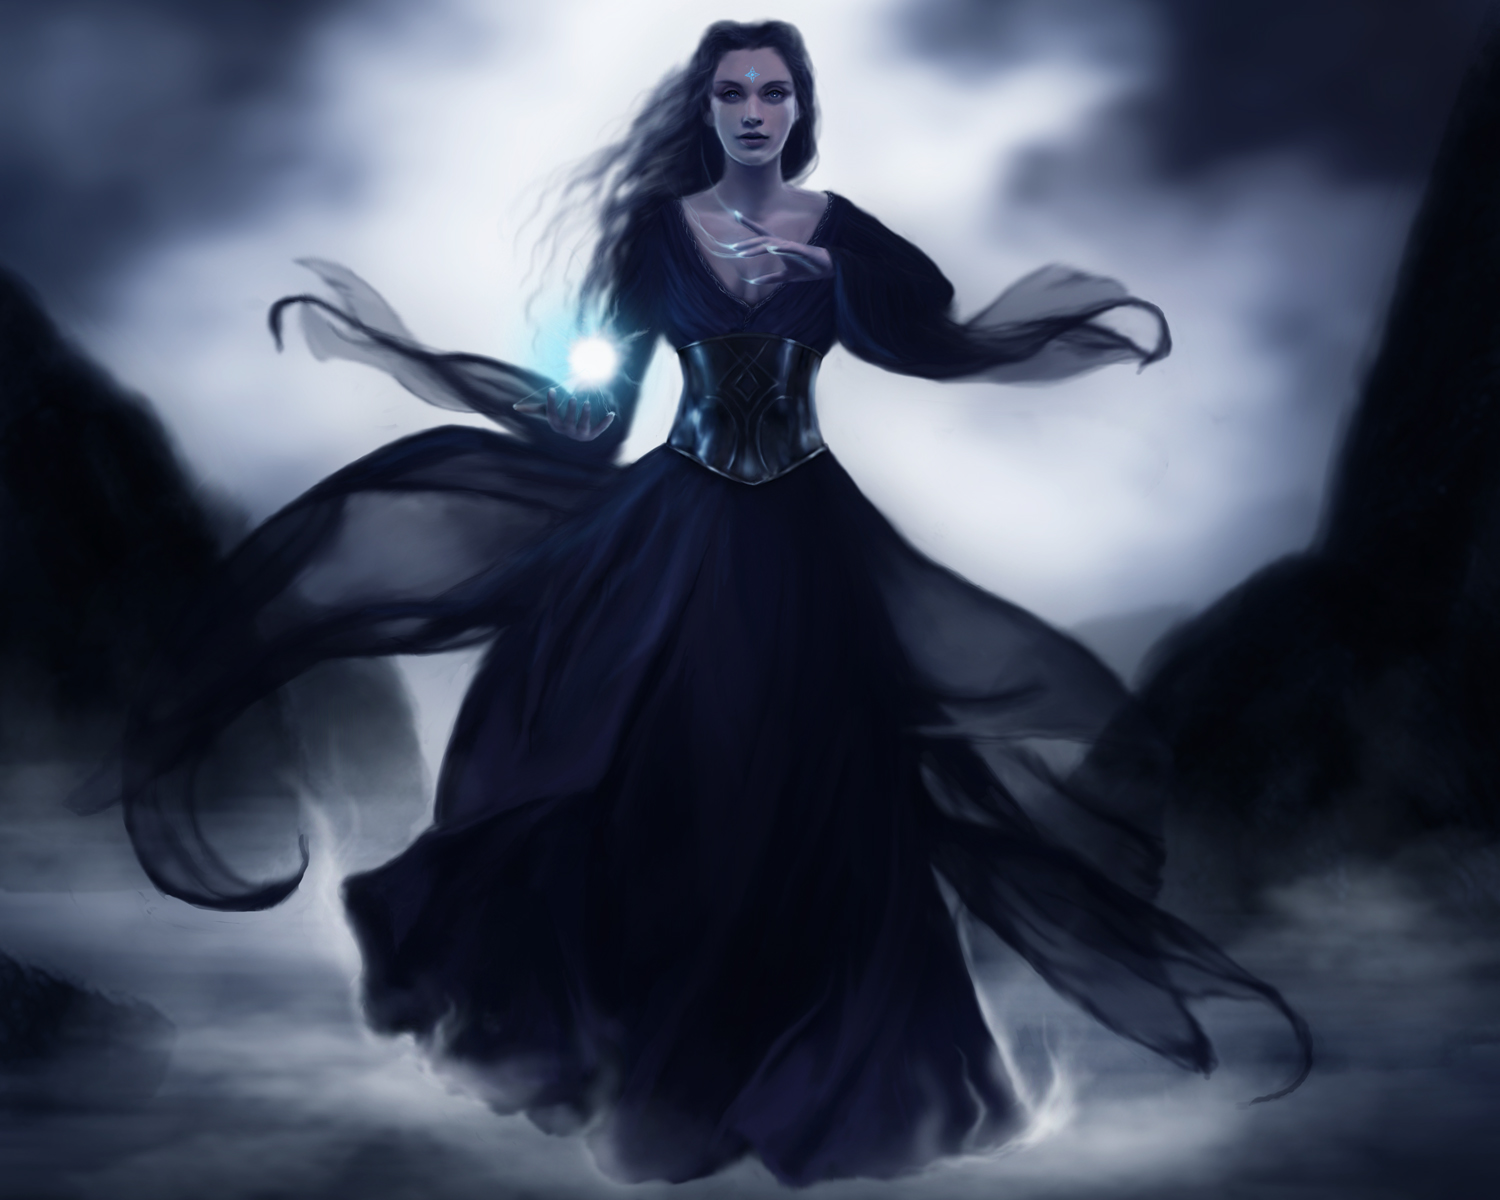 1920x1080 Wallpaper Fantasy Girl Dark Horror Gothic Fantasy Art Witch Magic Women Girl Gown